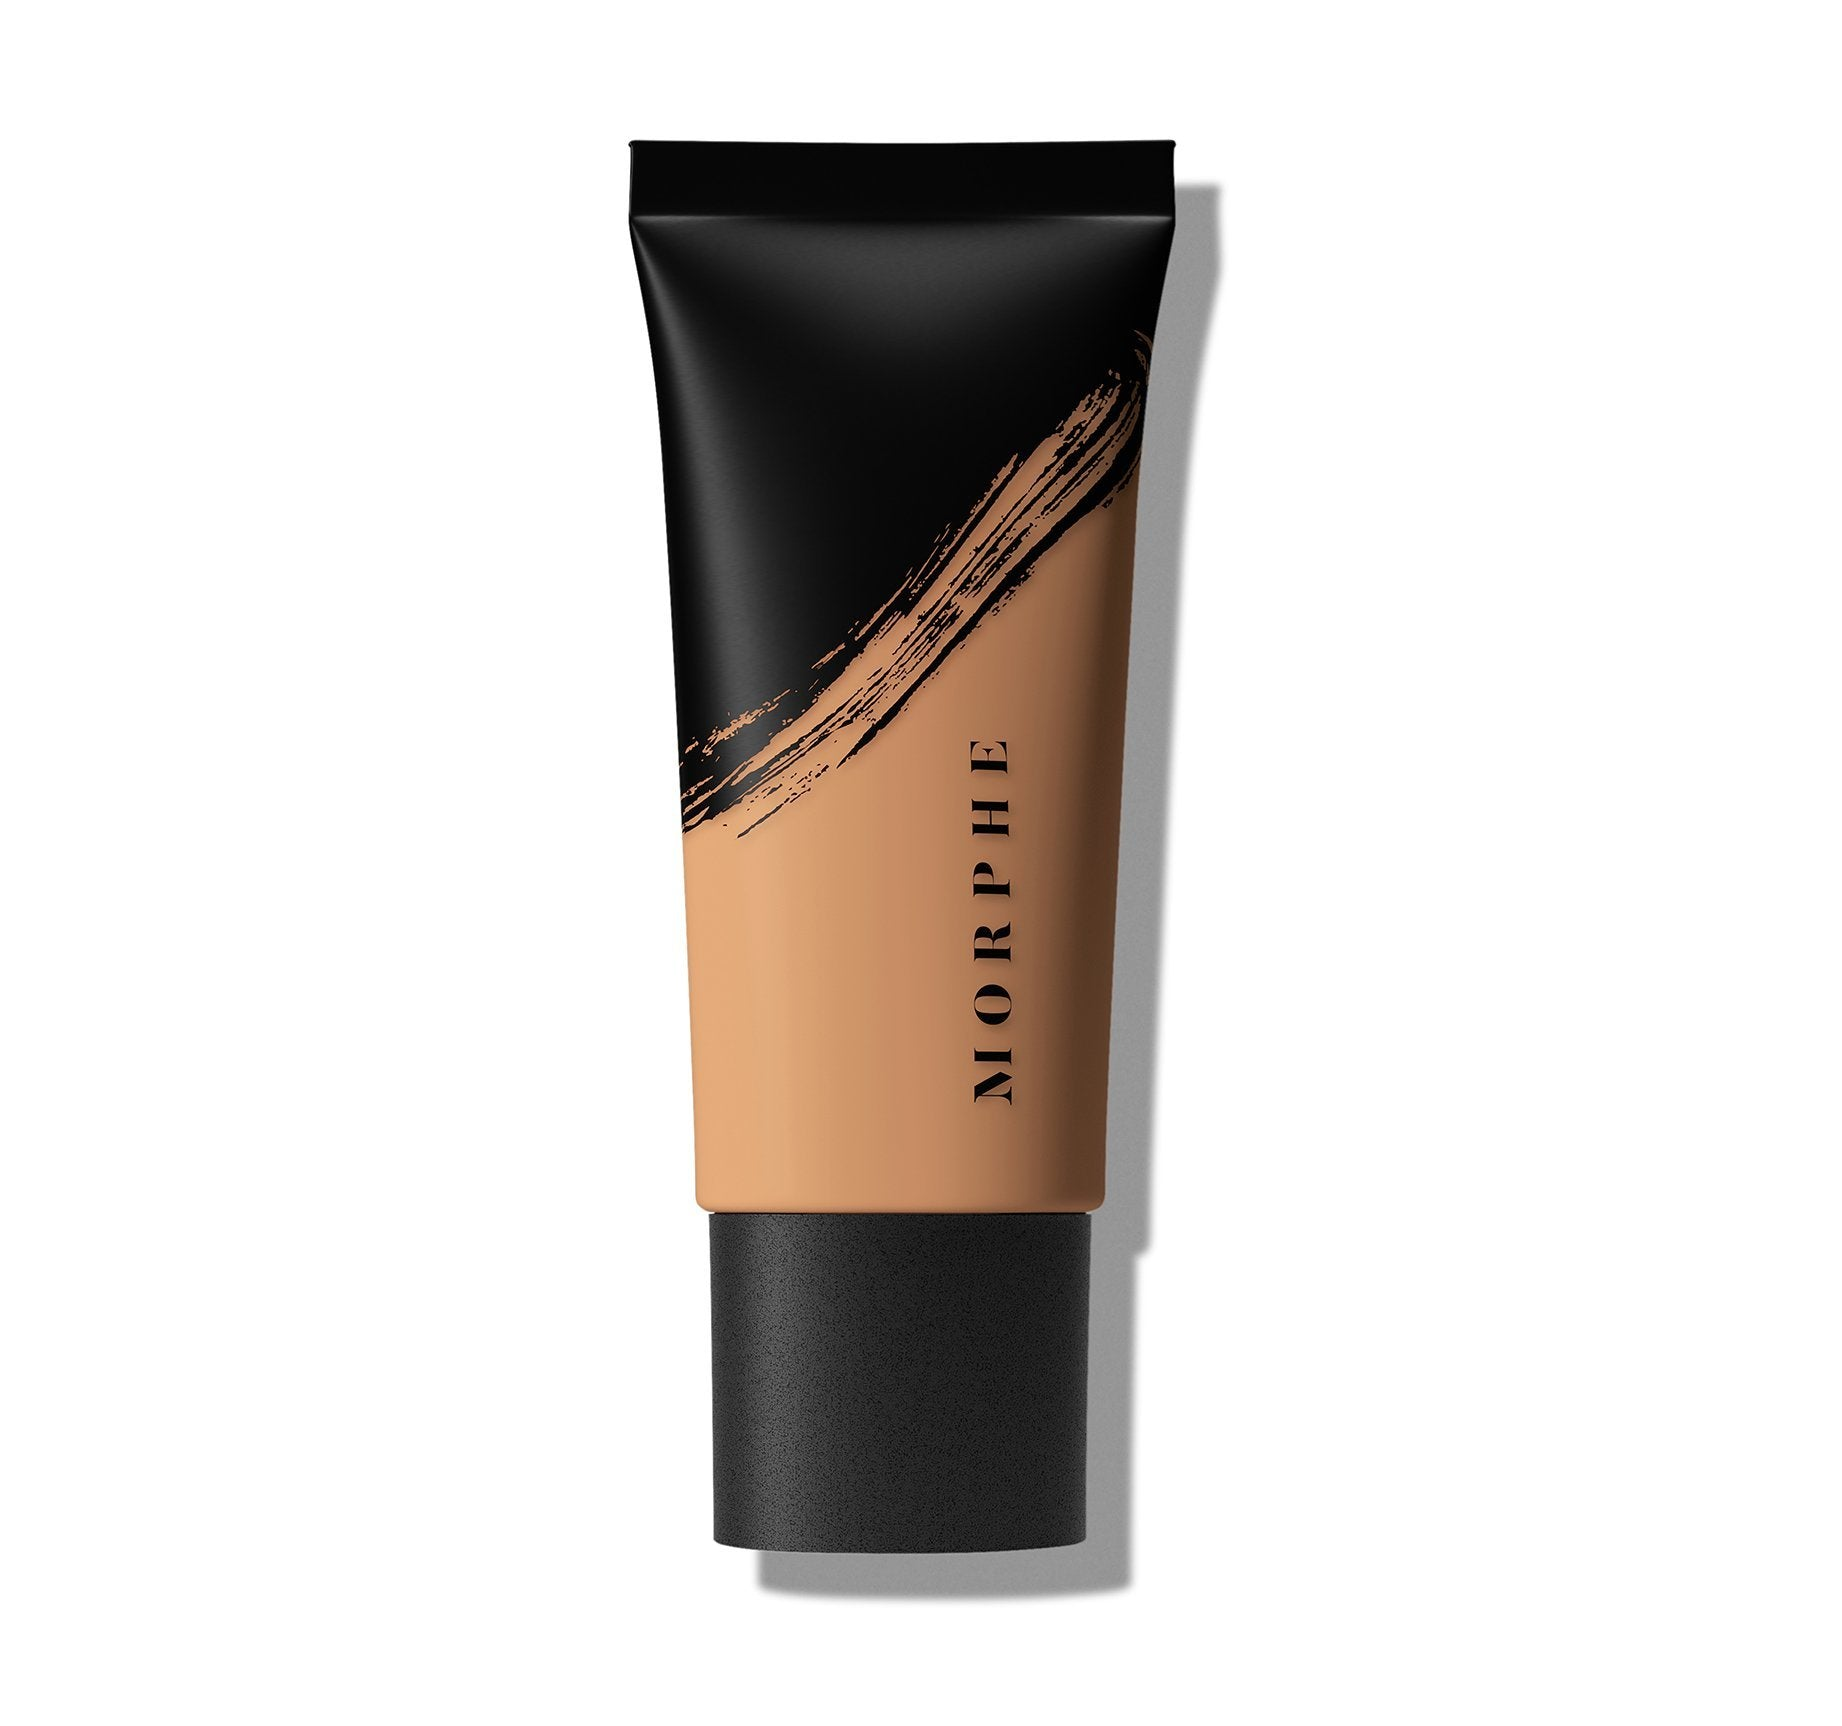 FLUIDITY FULL-COVERAGE FOUNDATION - F2.70, view larger image